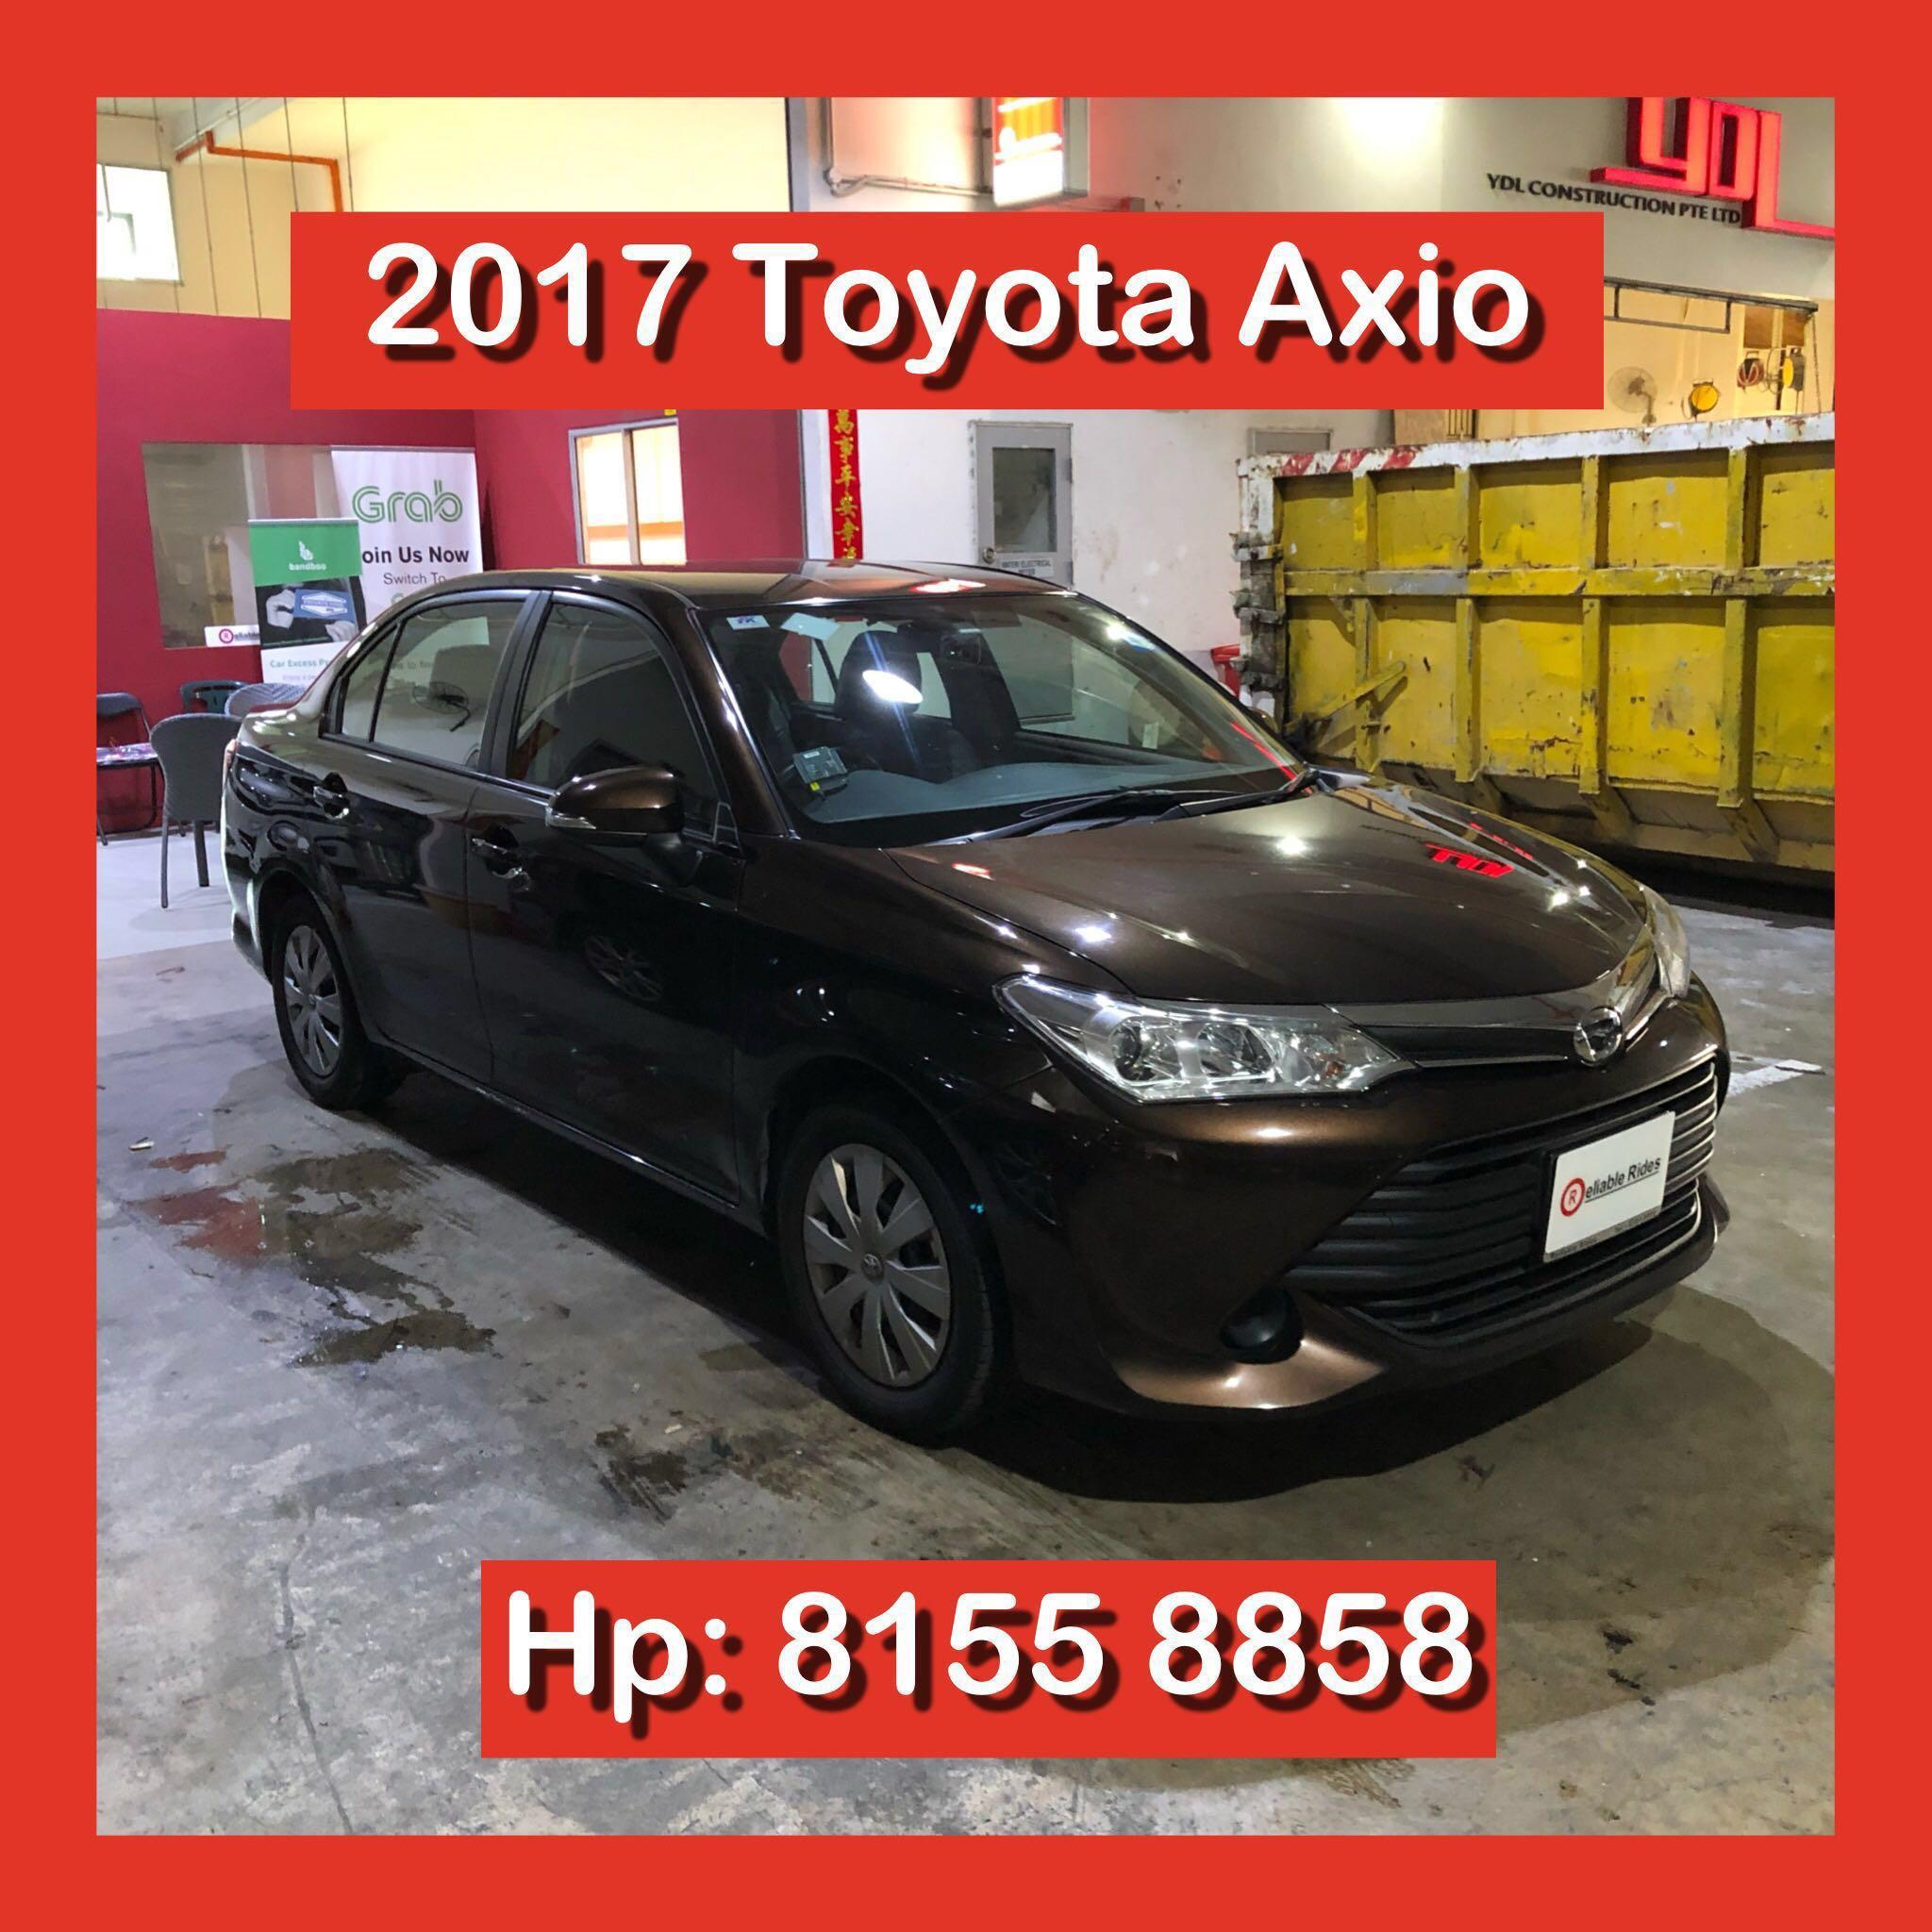 2017 Toyota Axio Grab Car Rental